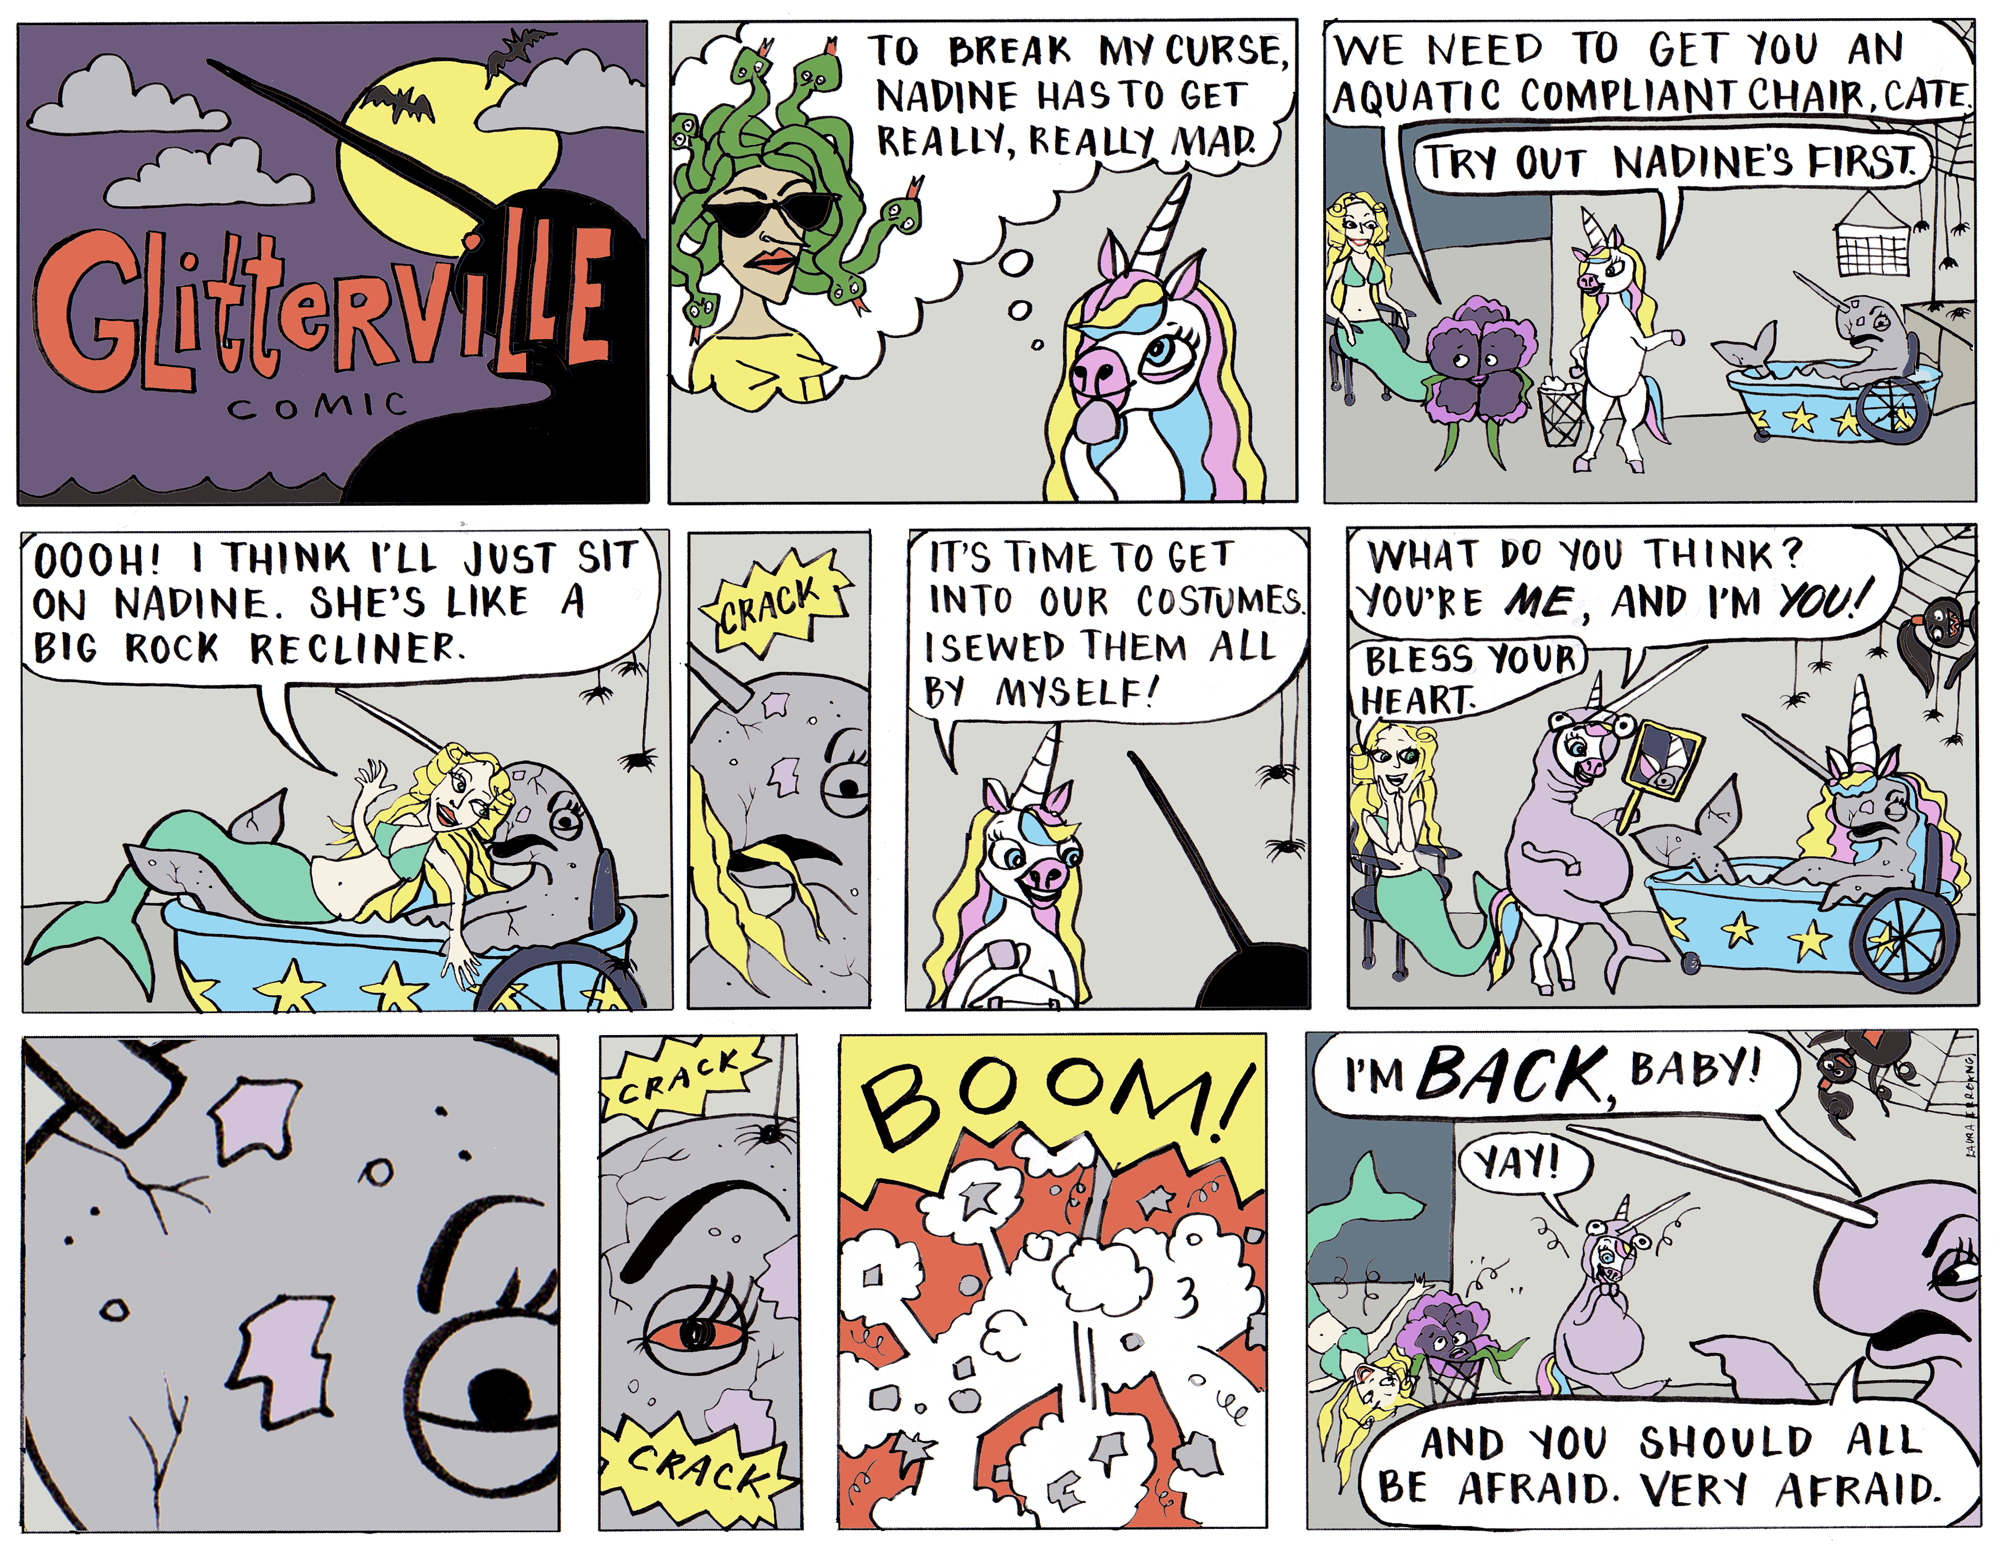 Glitterville Comic-October 31, 2018 color final.jpg